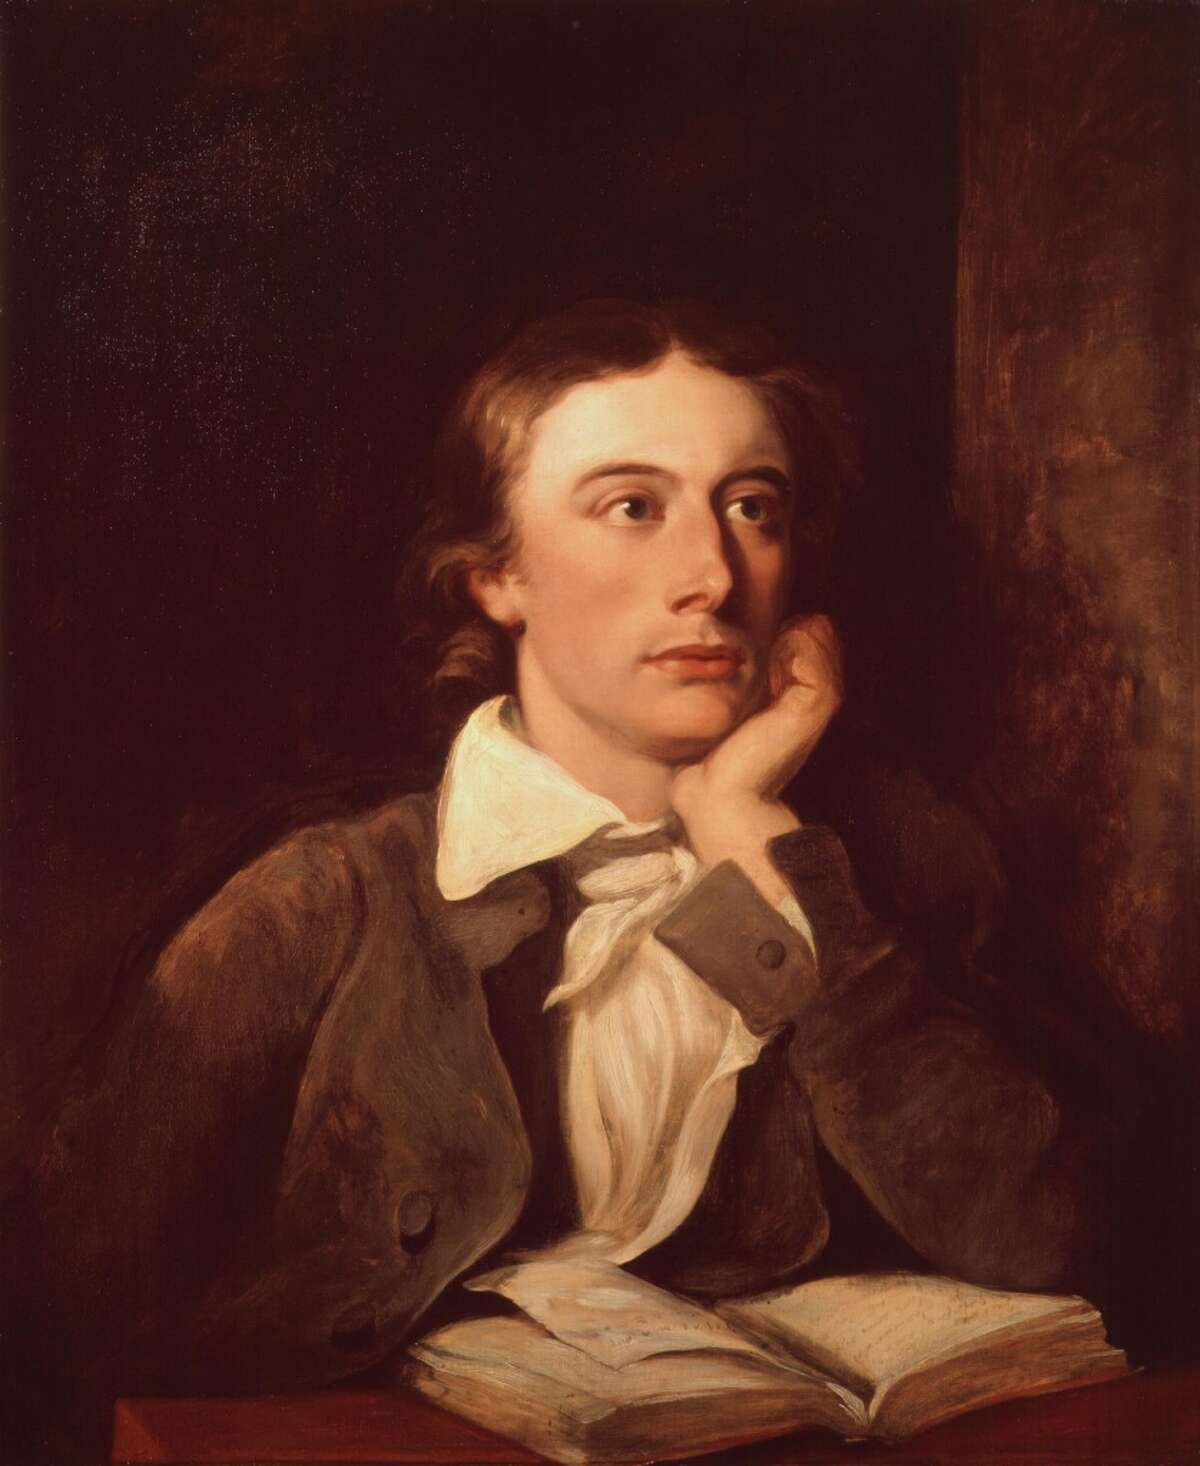 John Keats The English Romantic poet died in 1821 at the age of 25 of tuberculosis.